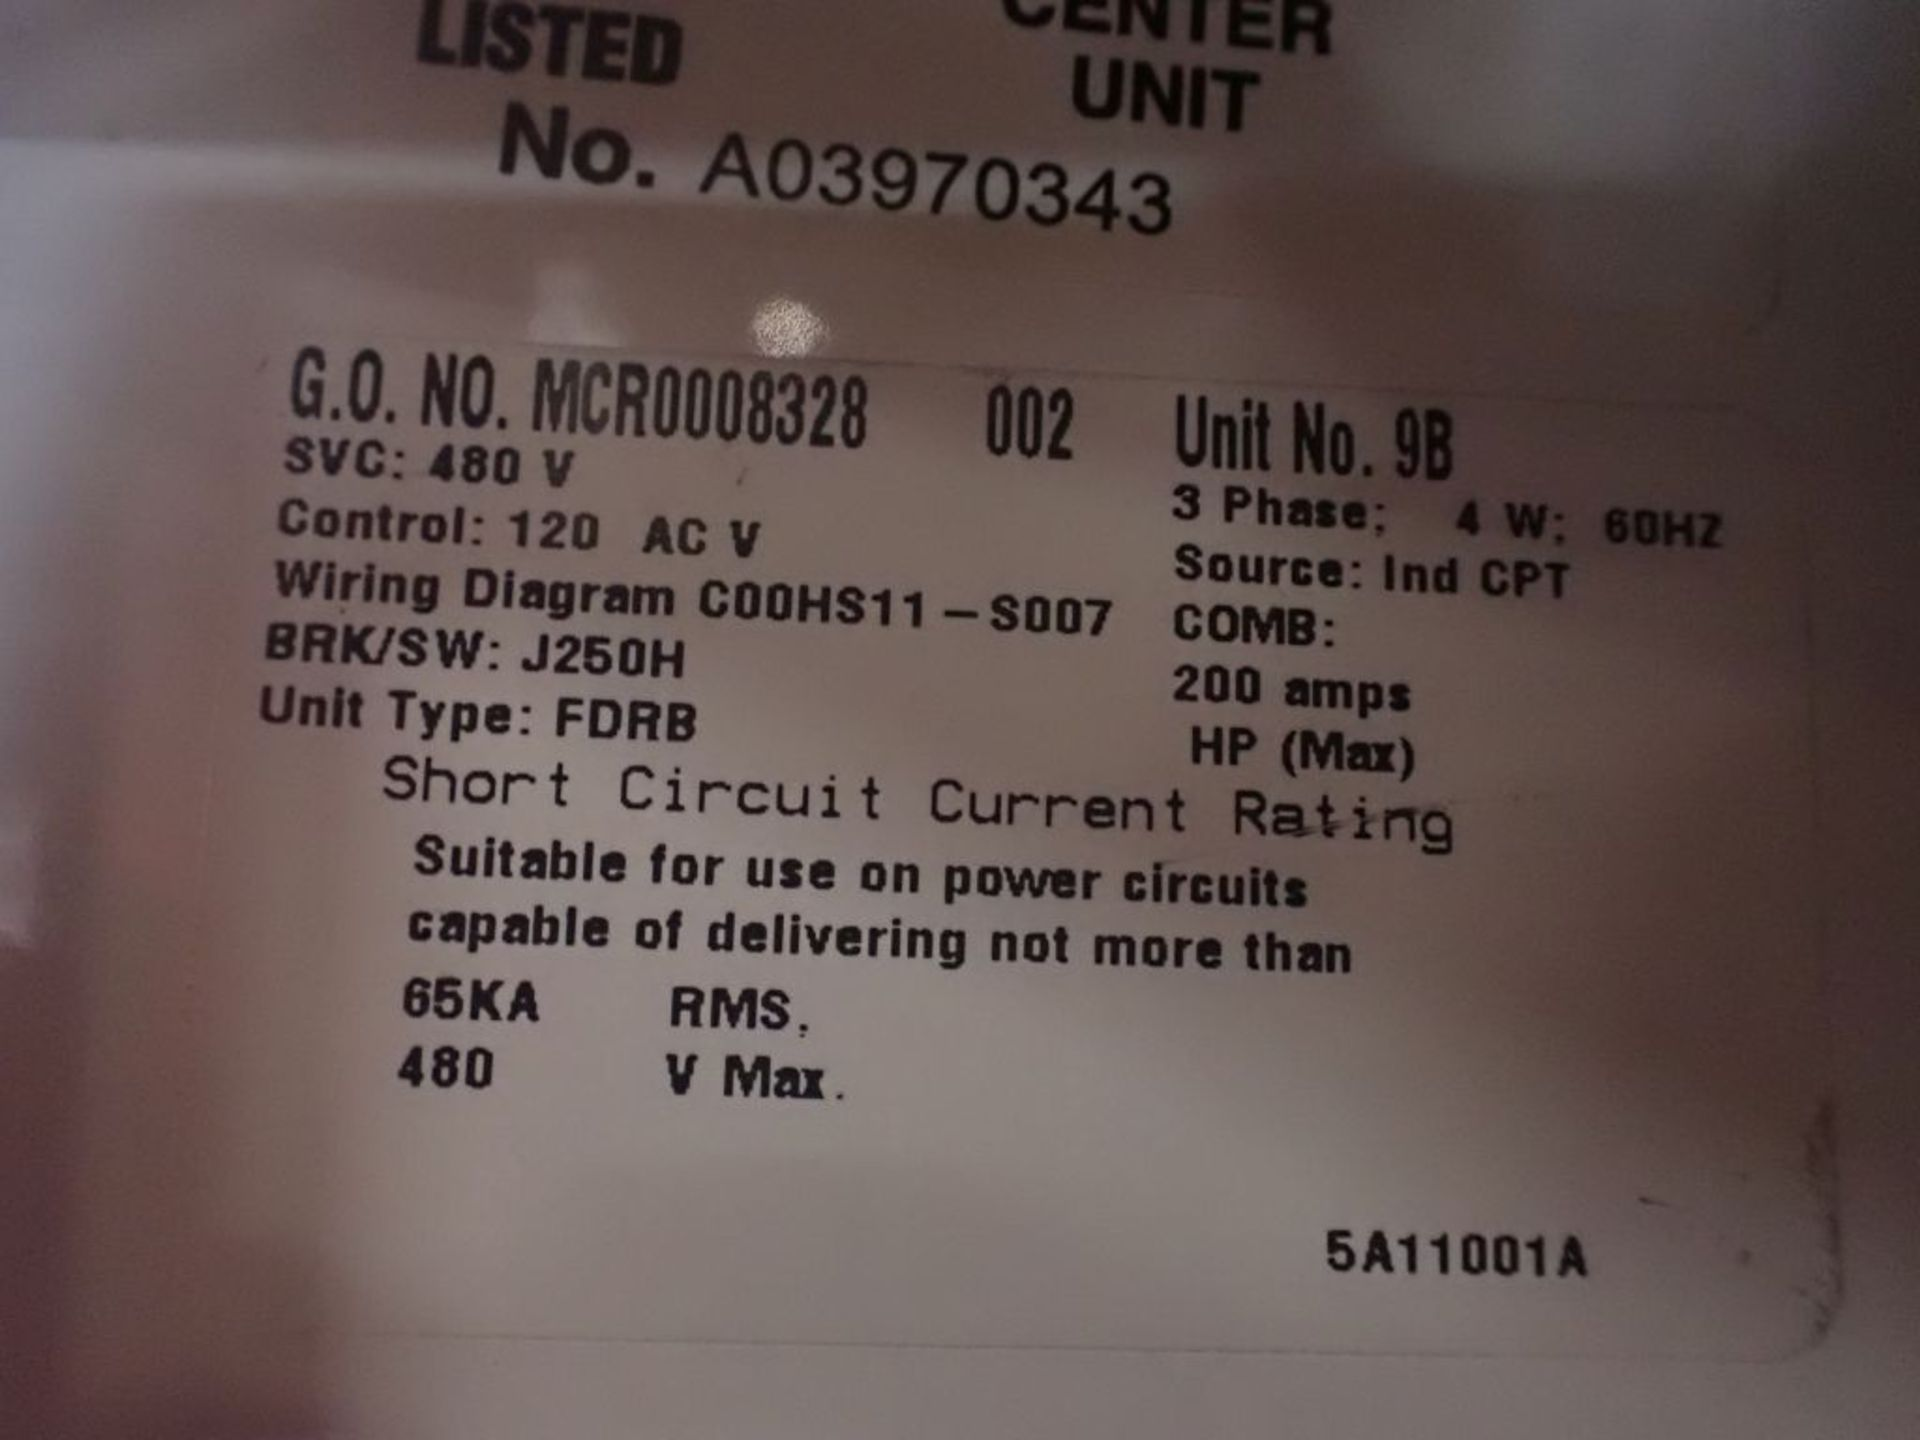 Eaton Freedom 2100 Series Motor Control Center   (2) F206-15A-10HP; (1) F206-30A-10HP; (1) FDRB- - Image 39 of 61